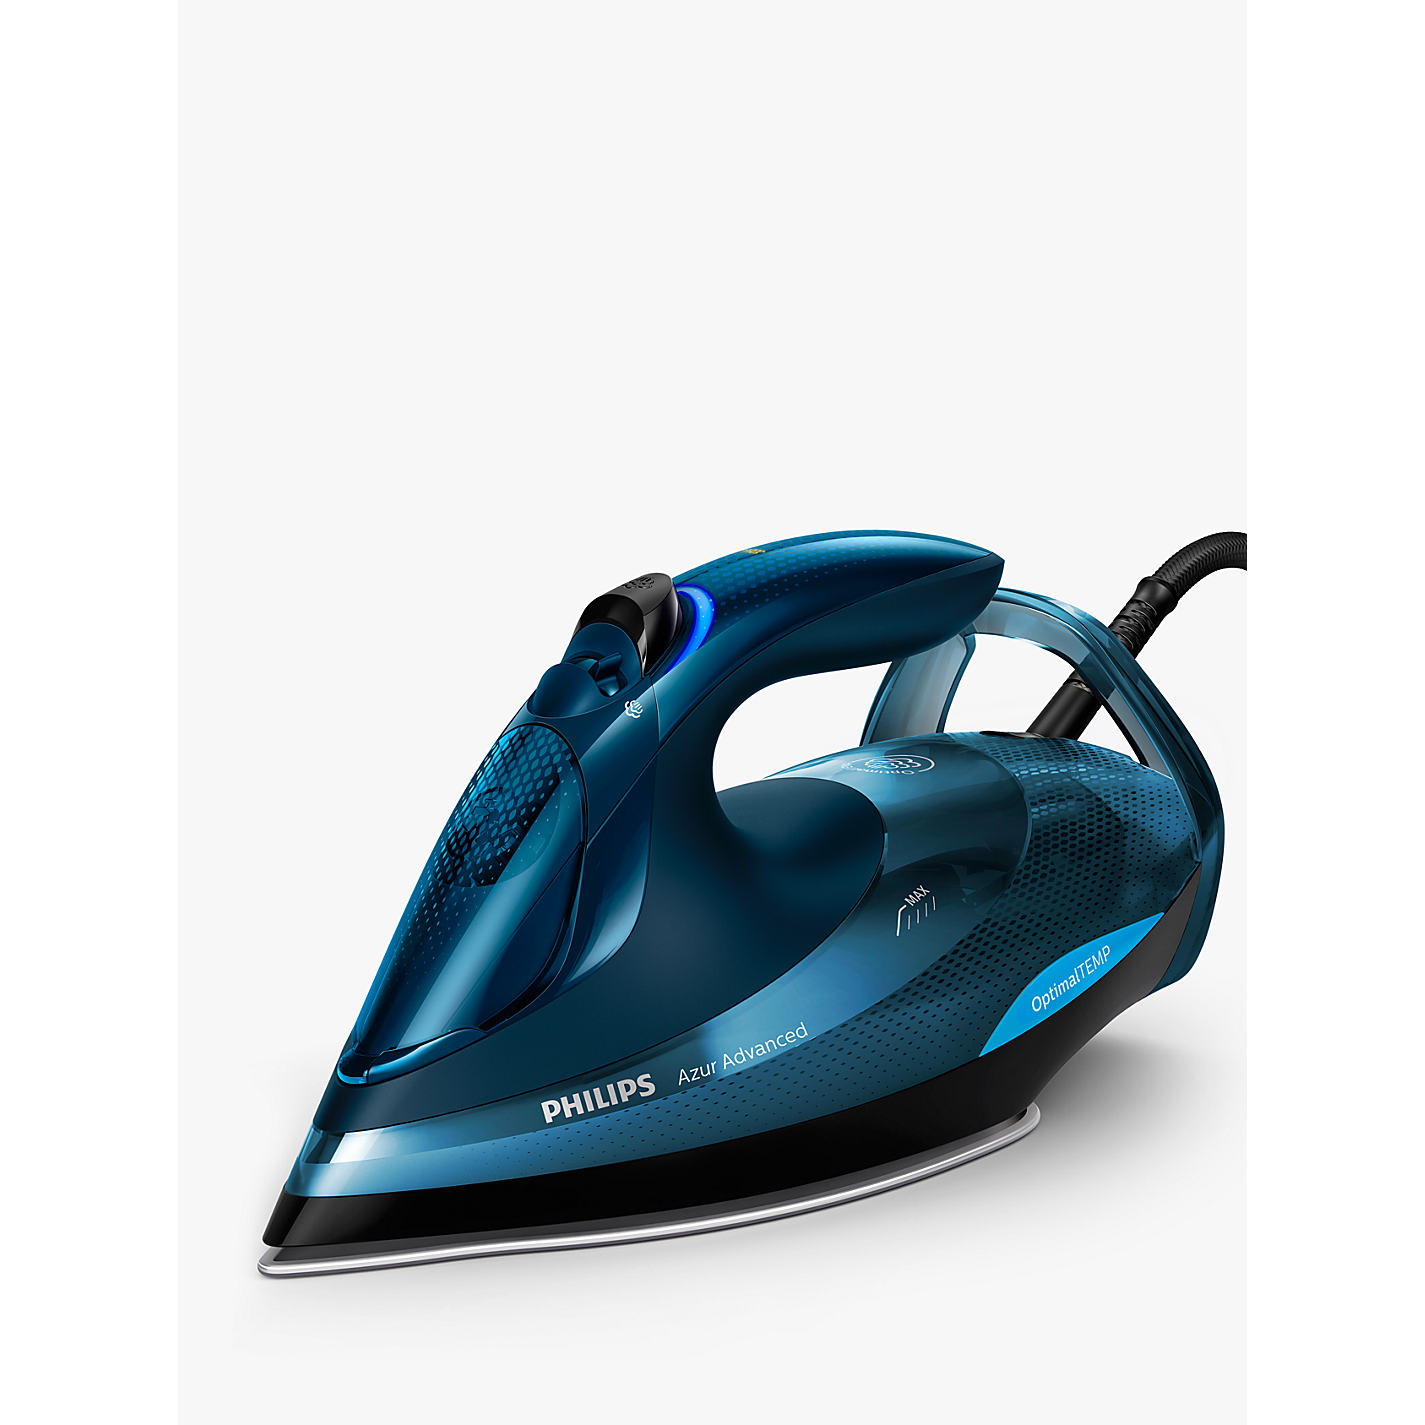 Cleaning rowenta pressure iron and steamer - Buy Philips Gc4938 20 Azur Advanced Steam Iron Blue Online At Johnlewis Com